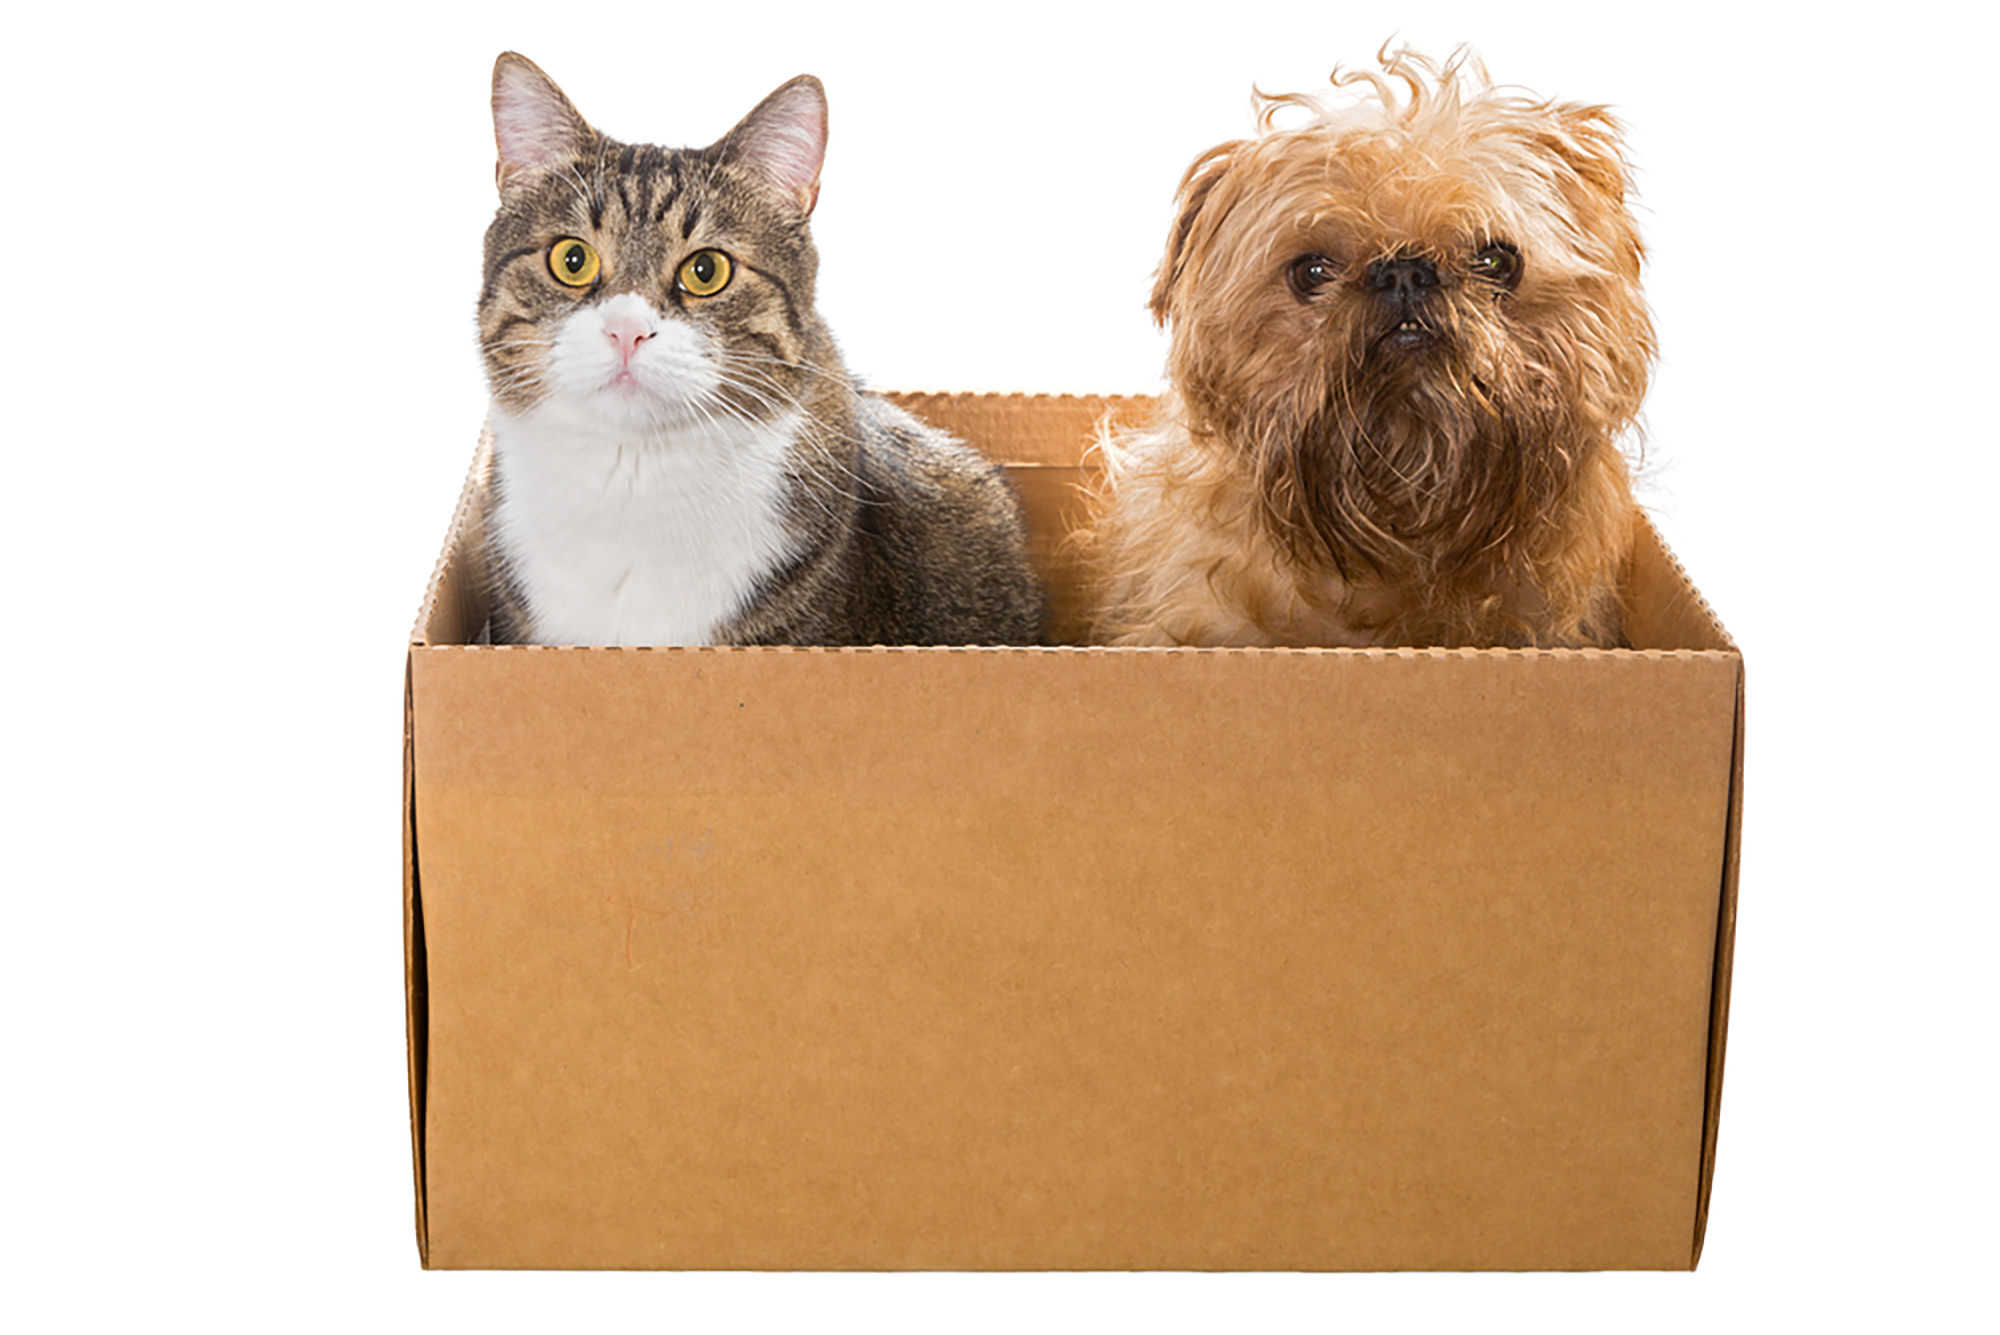 Image of a very cute kitten and puppy in a cardboard box